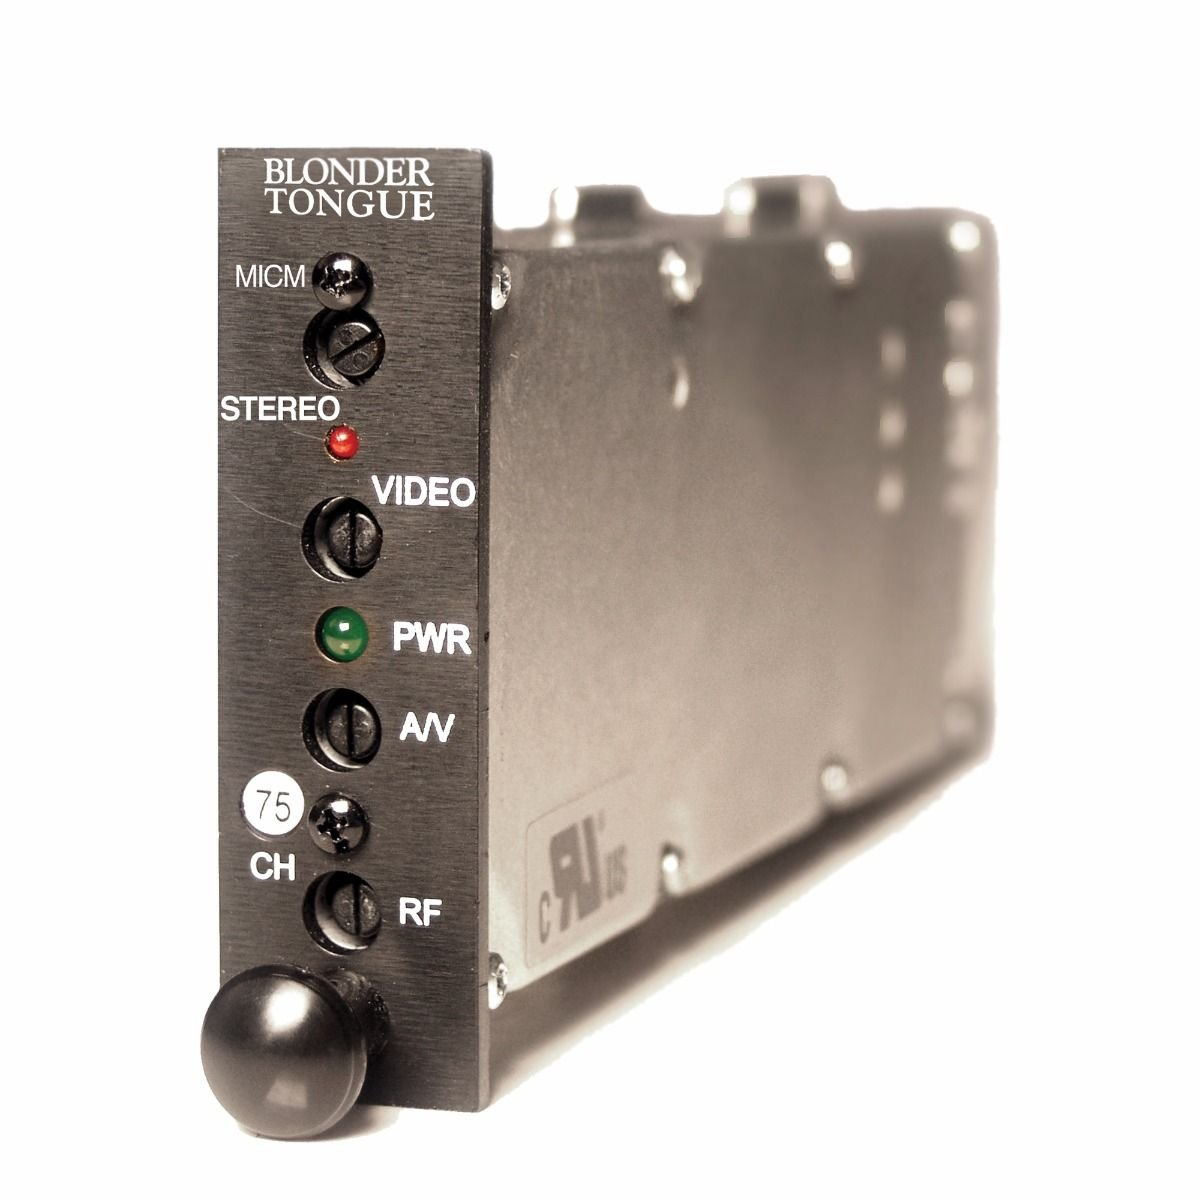 BLONDER TONGUE MICM MINI MICRO MODULATOR MANY CHANNELS AVAILABLE!